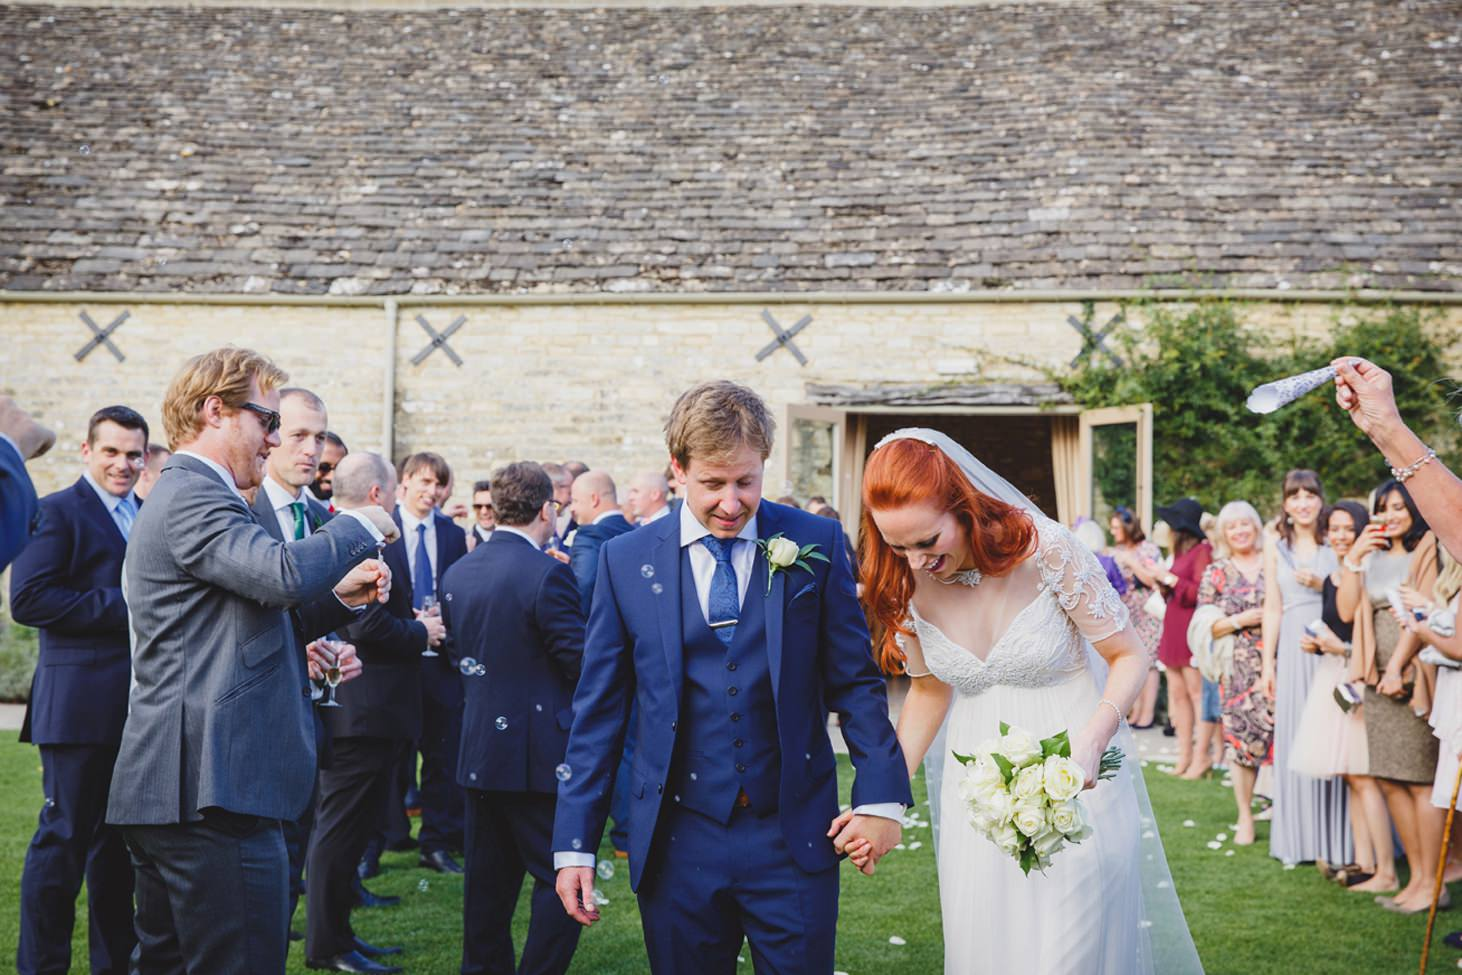 Caswell House wedding photography walking through confetti